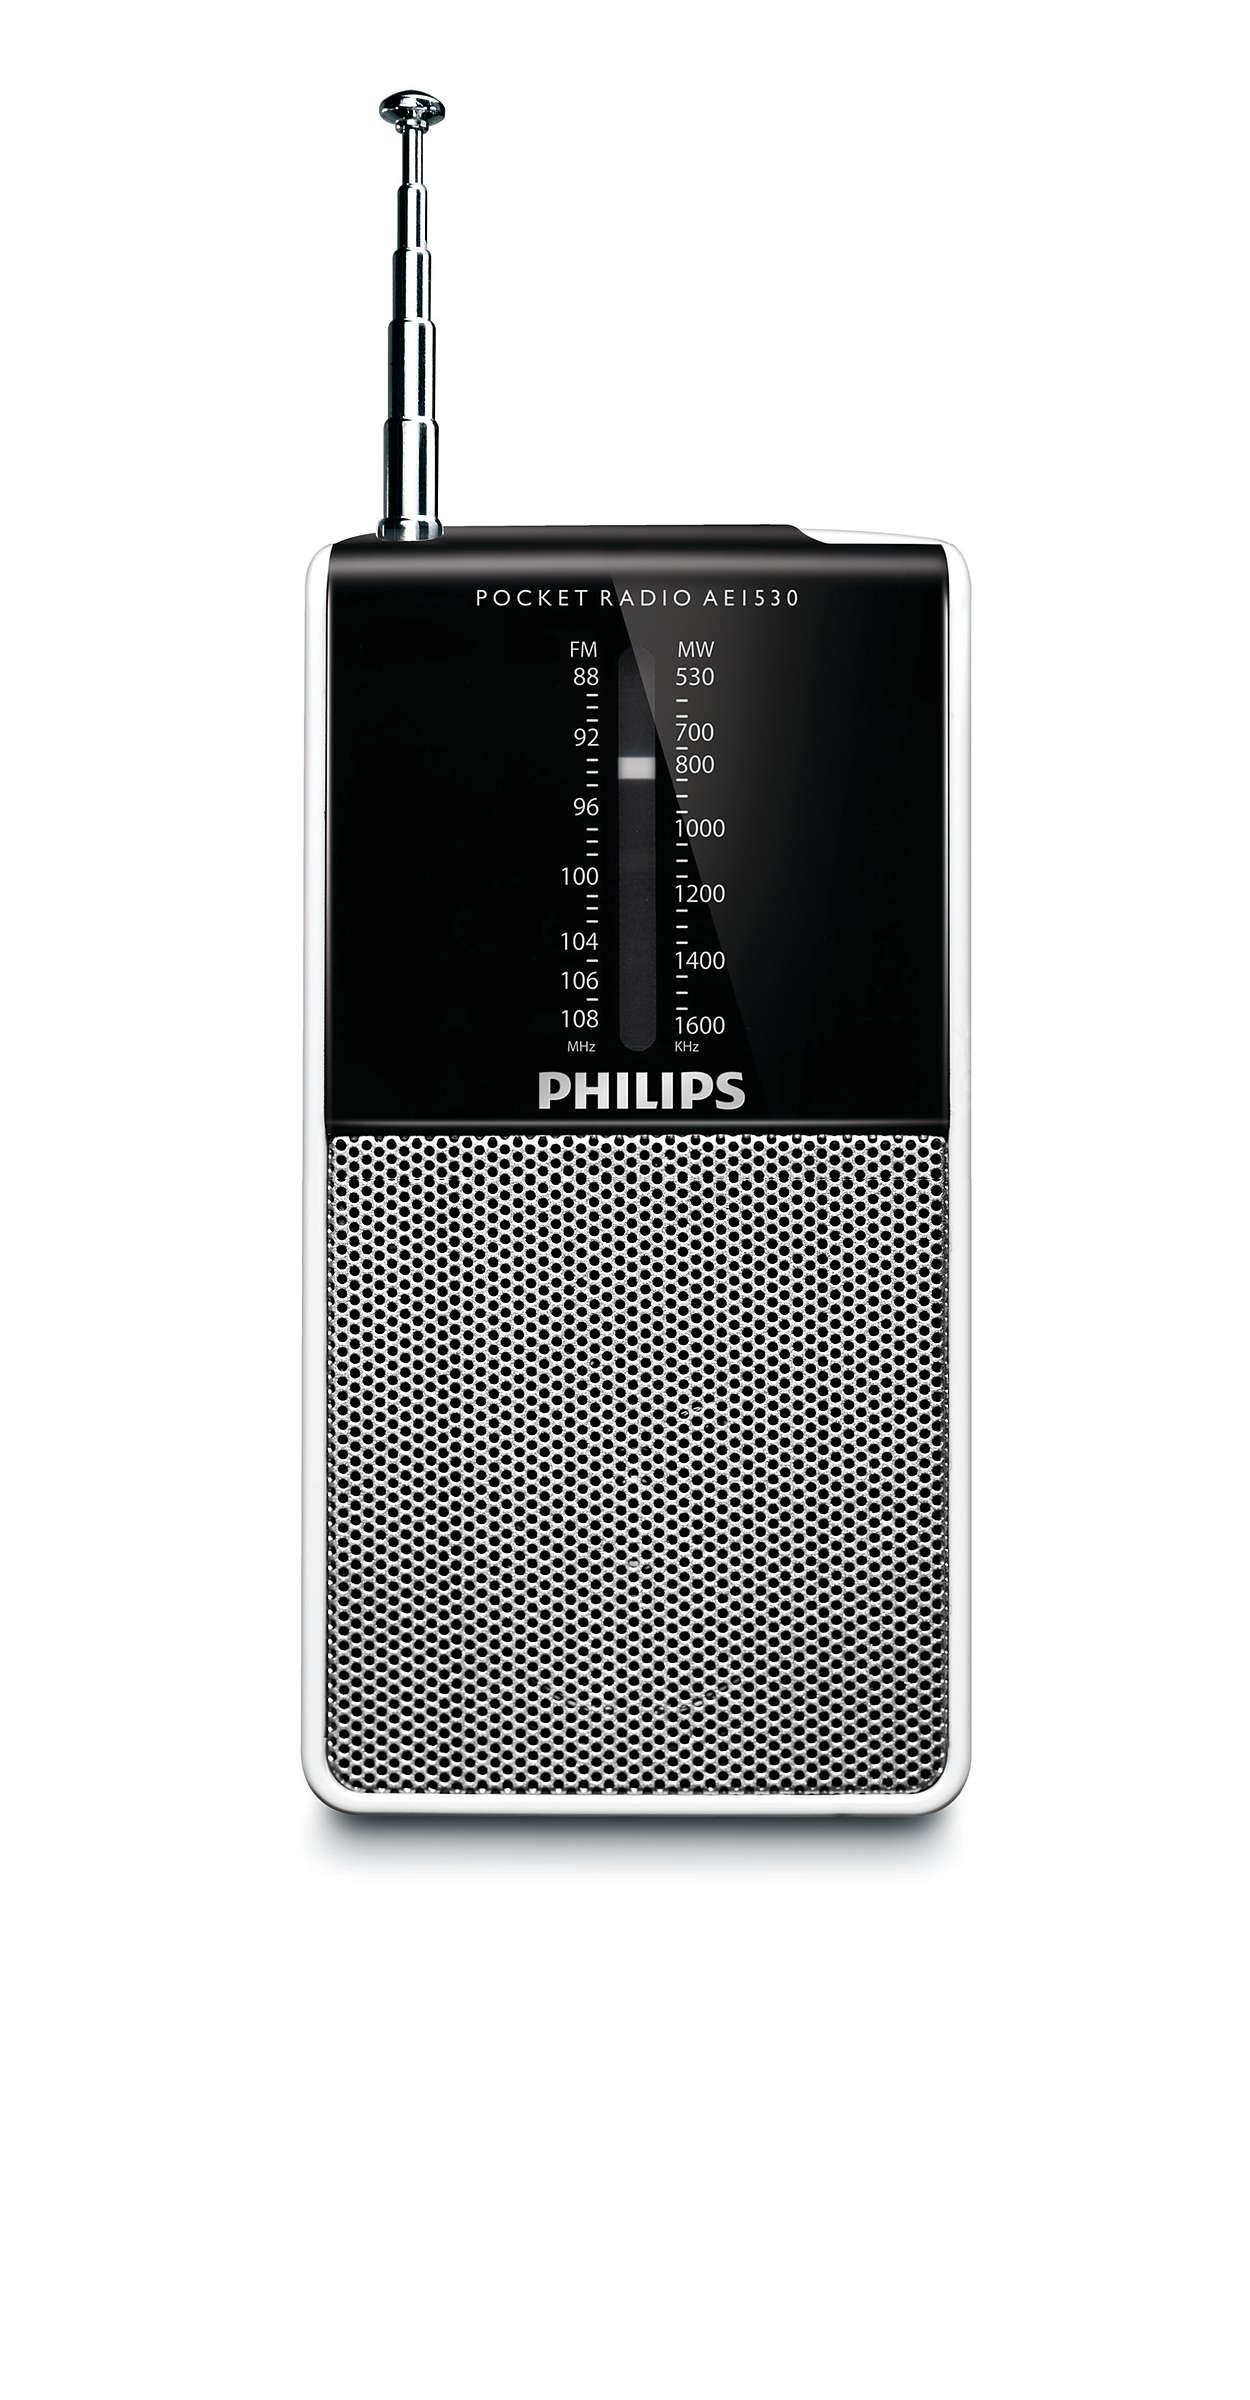 radio portable ae1530 00 philips. Black Bedroom Furniture Sets. Home Design Ideas